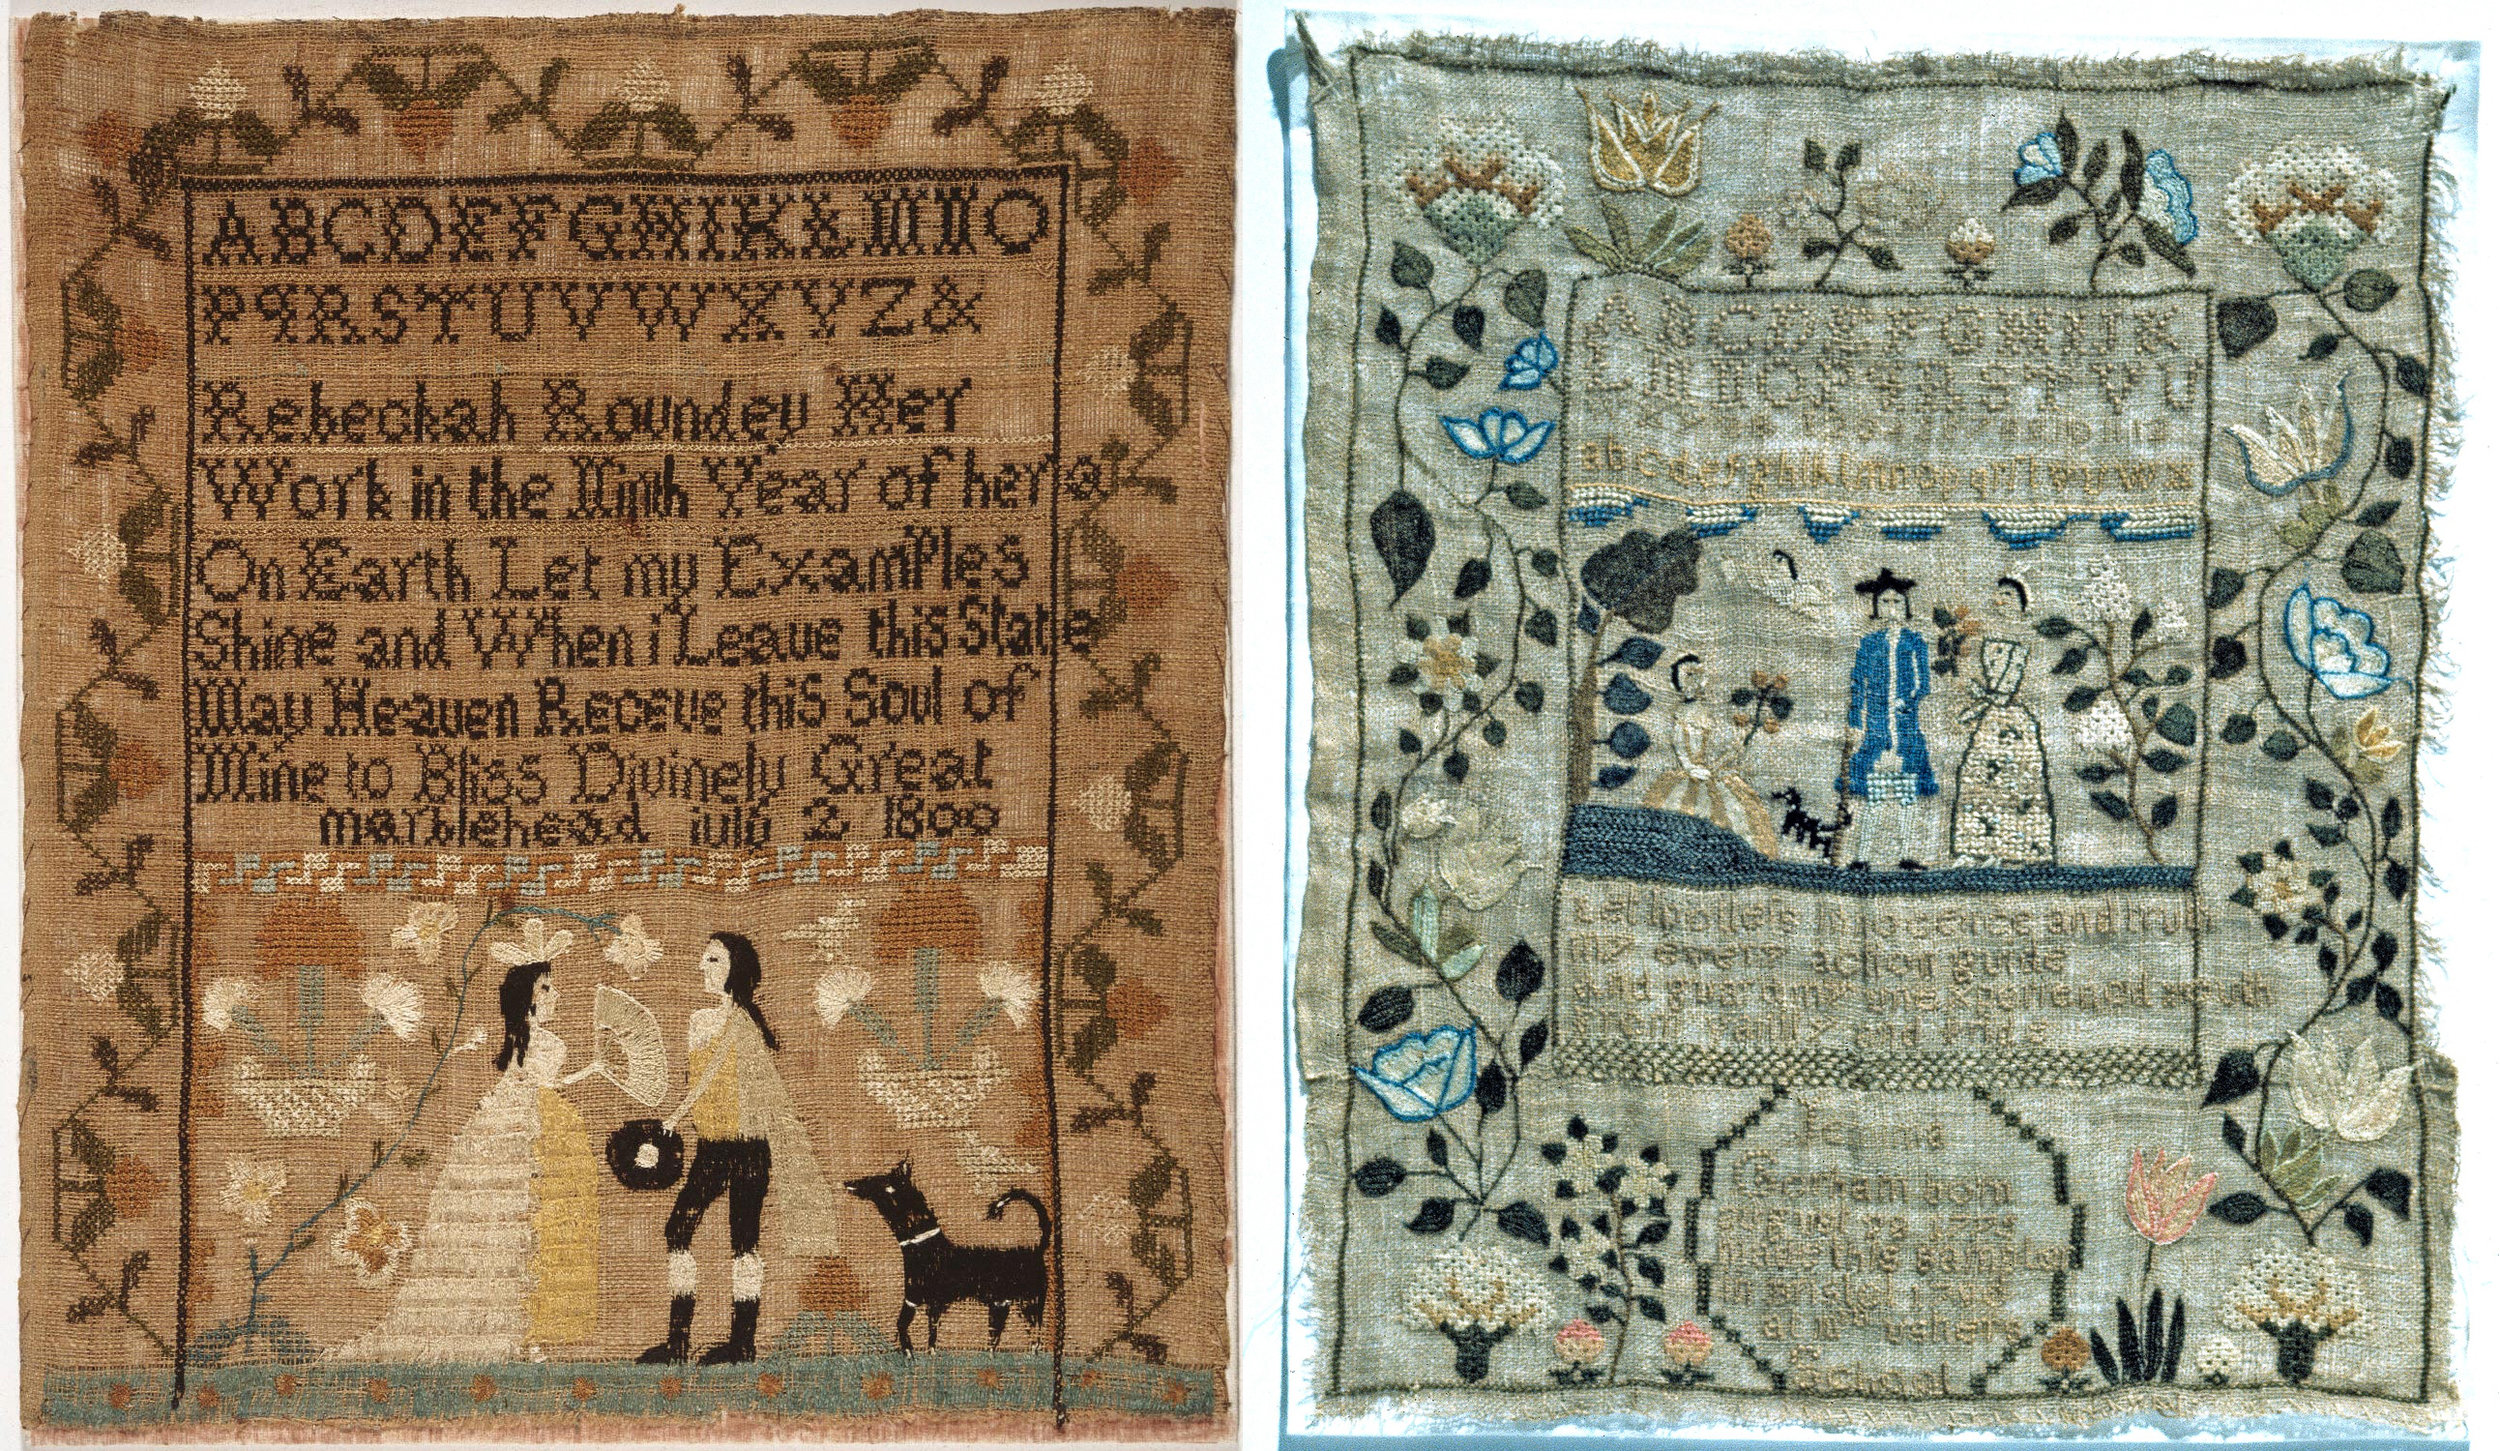 Left:    Rebeckah Roundey sampler  (1800, Marblehead, Massachusetts) at the Philadelphia Museum of Art. I love the couple, their wardrobe, and the striking black dog.   Right:    J  emima Gorham sampler  (1790, Bristol, Rhode Island) at the National Museum of American History. Another small black dog! I love the blues and pinks, and the vines of flowers.